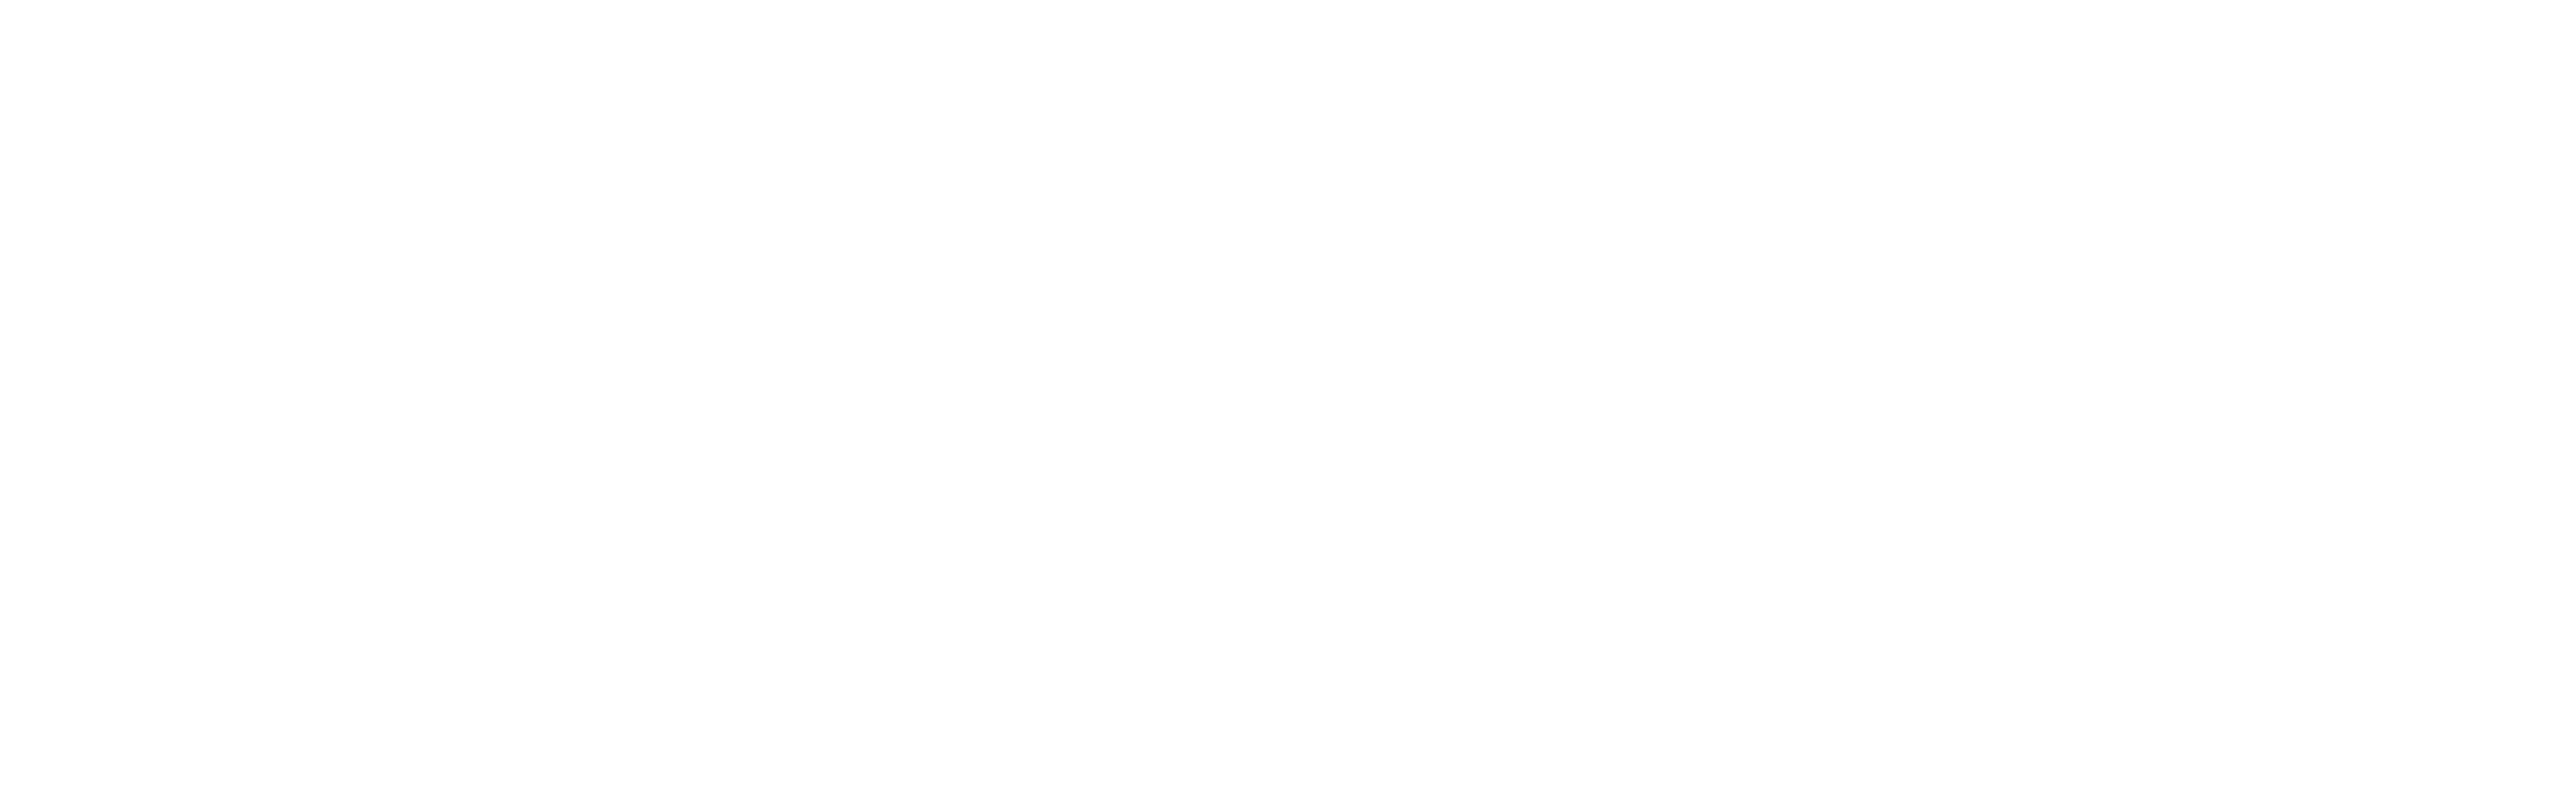 Movement.org_Events_Movement Day_2021_Logos_R1-04